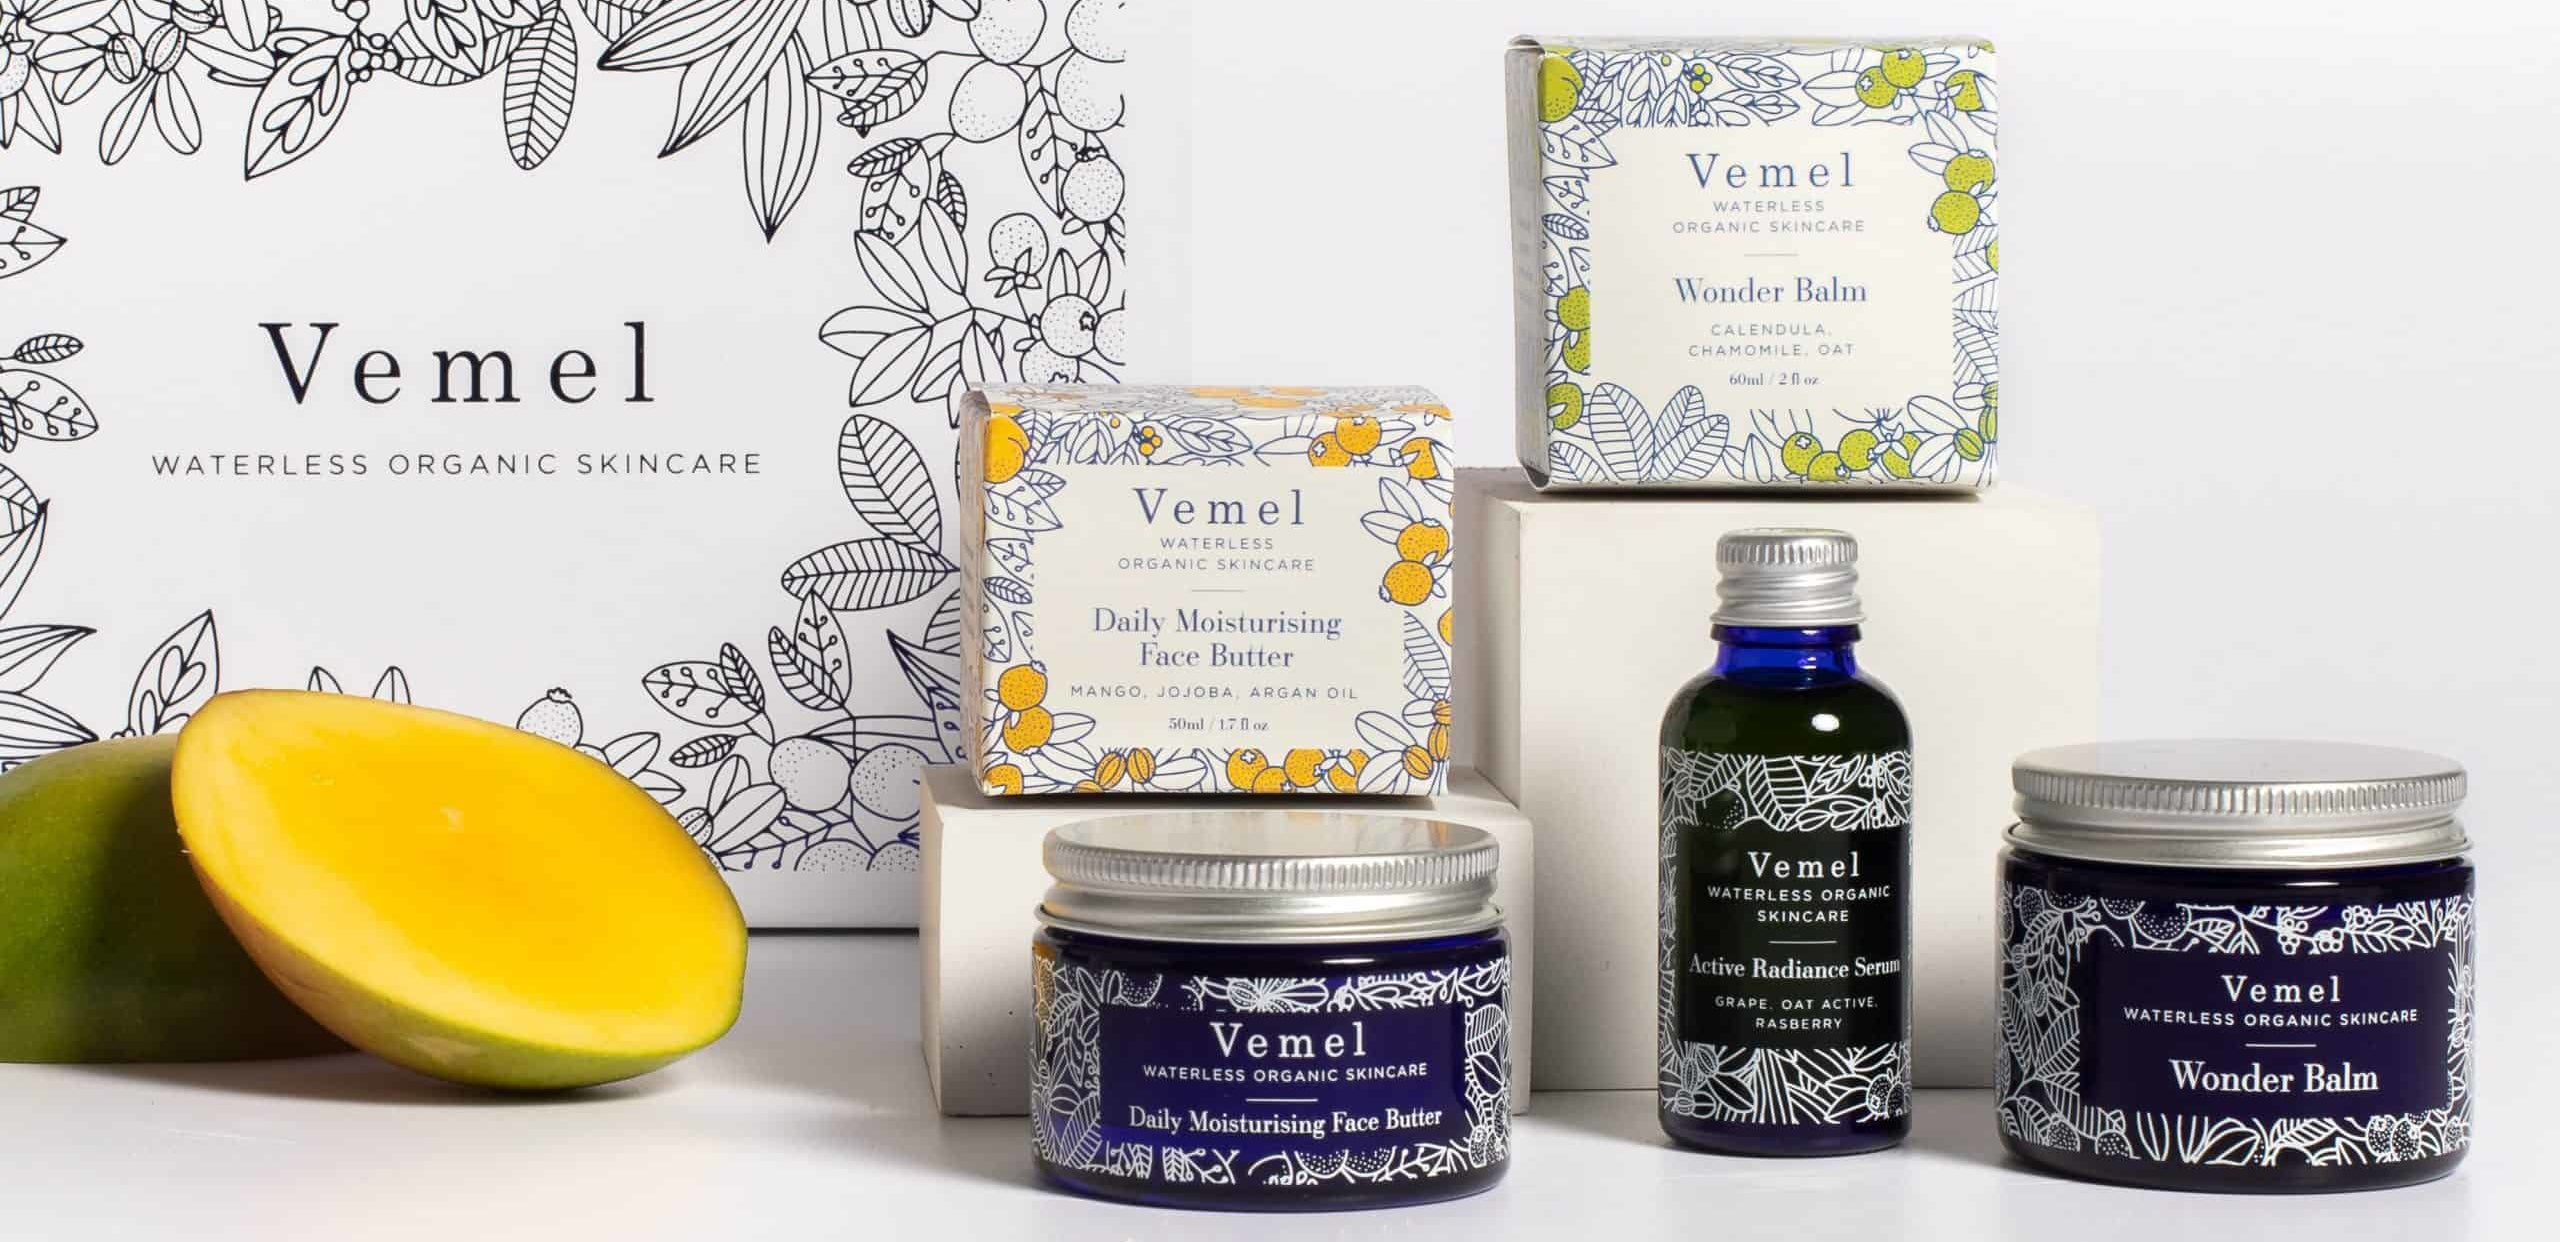 Vemel - Waterless, Vegan, Organic, Plastic Free Skin Care